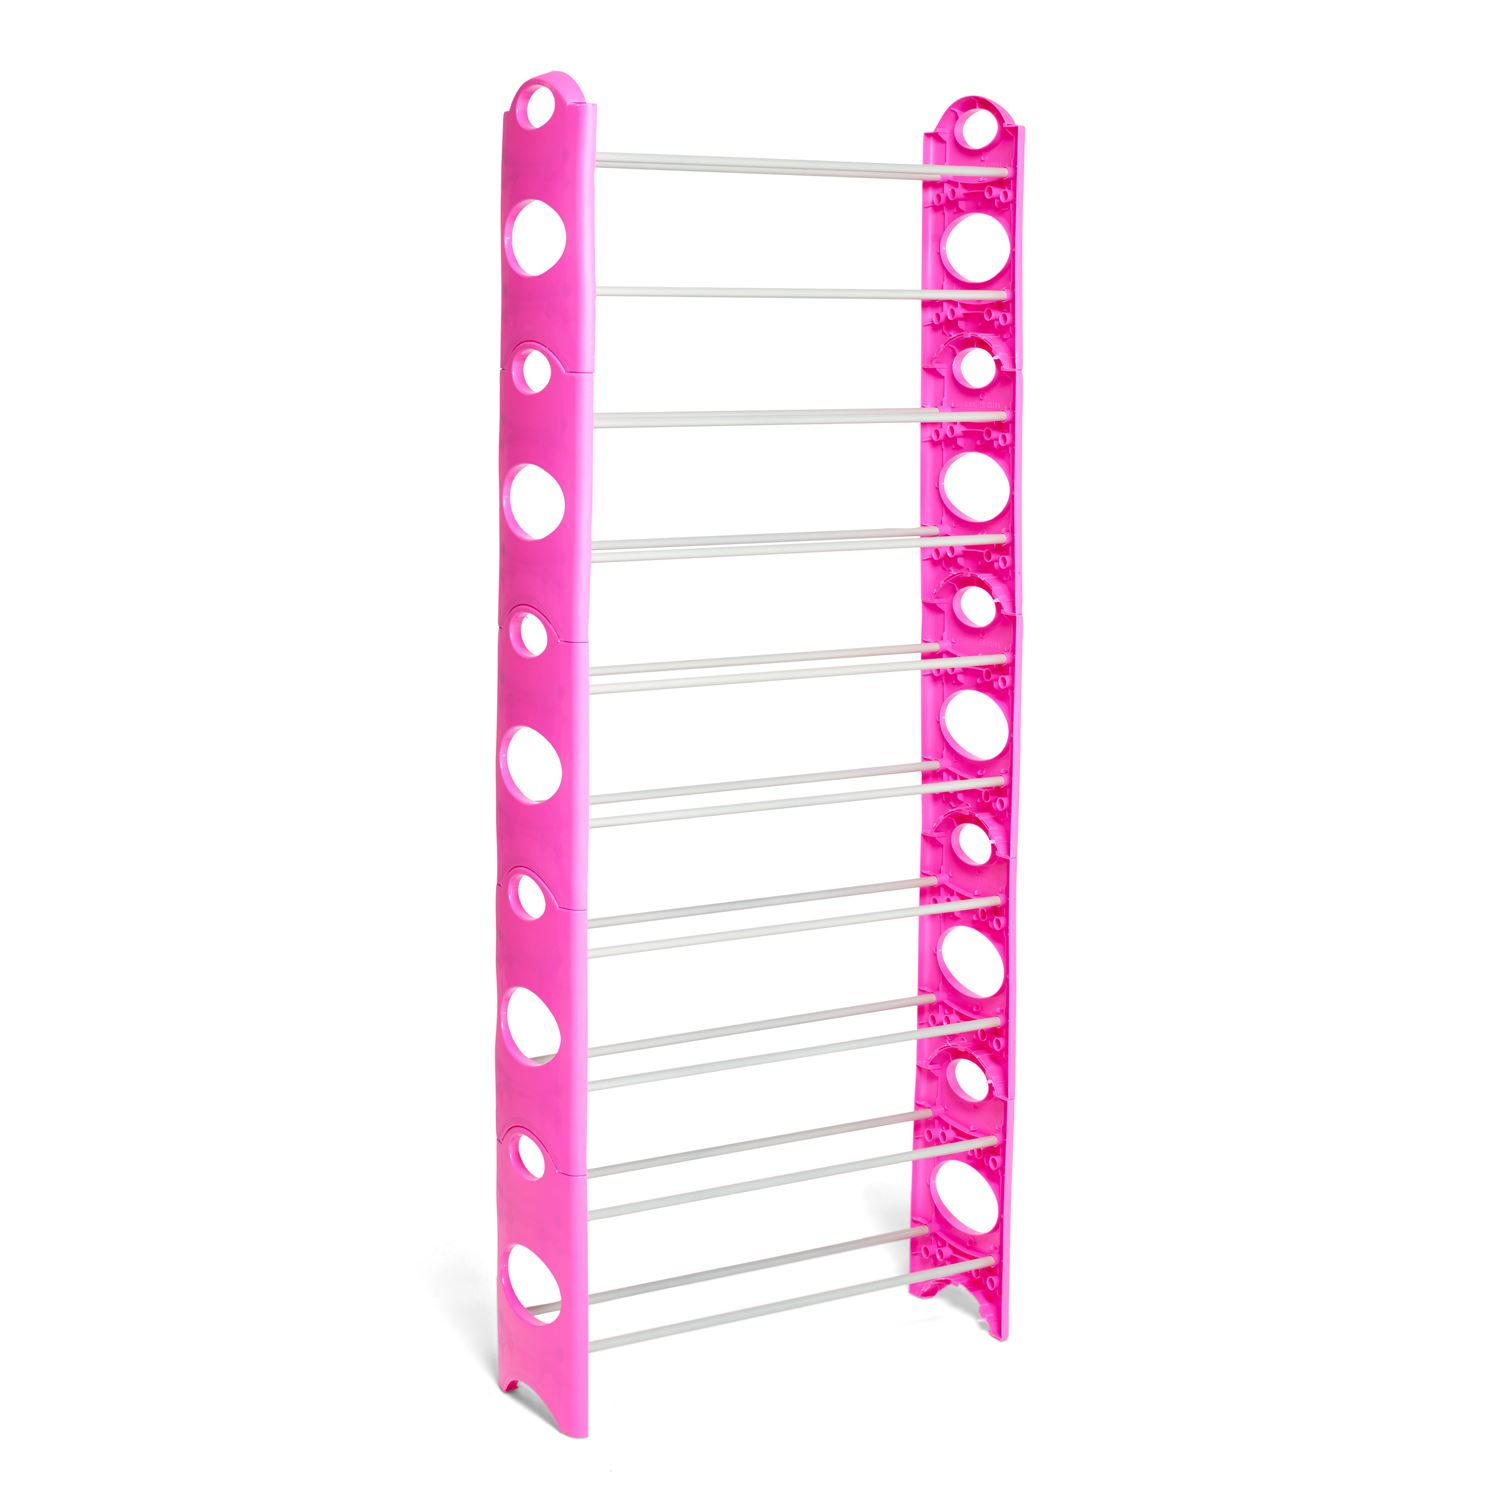 Vinsani-10-Tier-Shoes-Storage-Organiser-Stand-Shelf-Rack-Holds-30-Pairs-Shoes